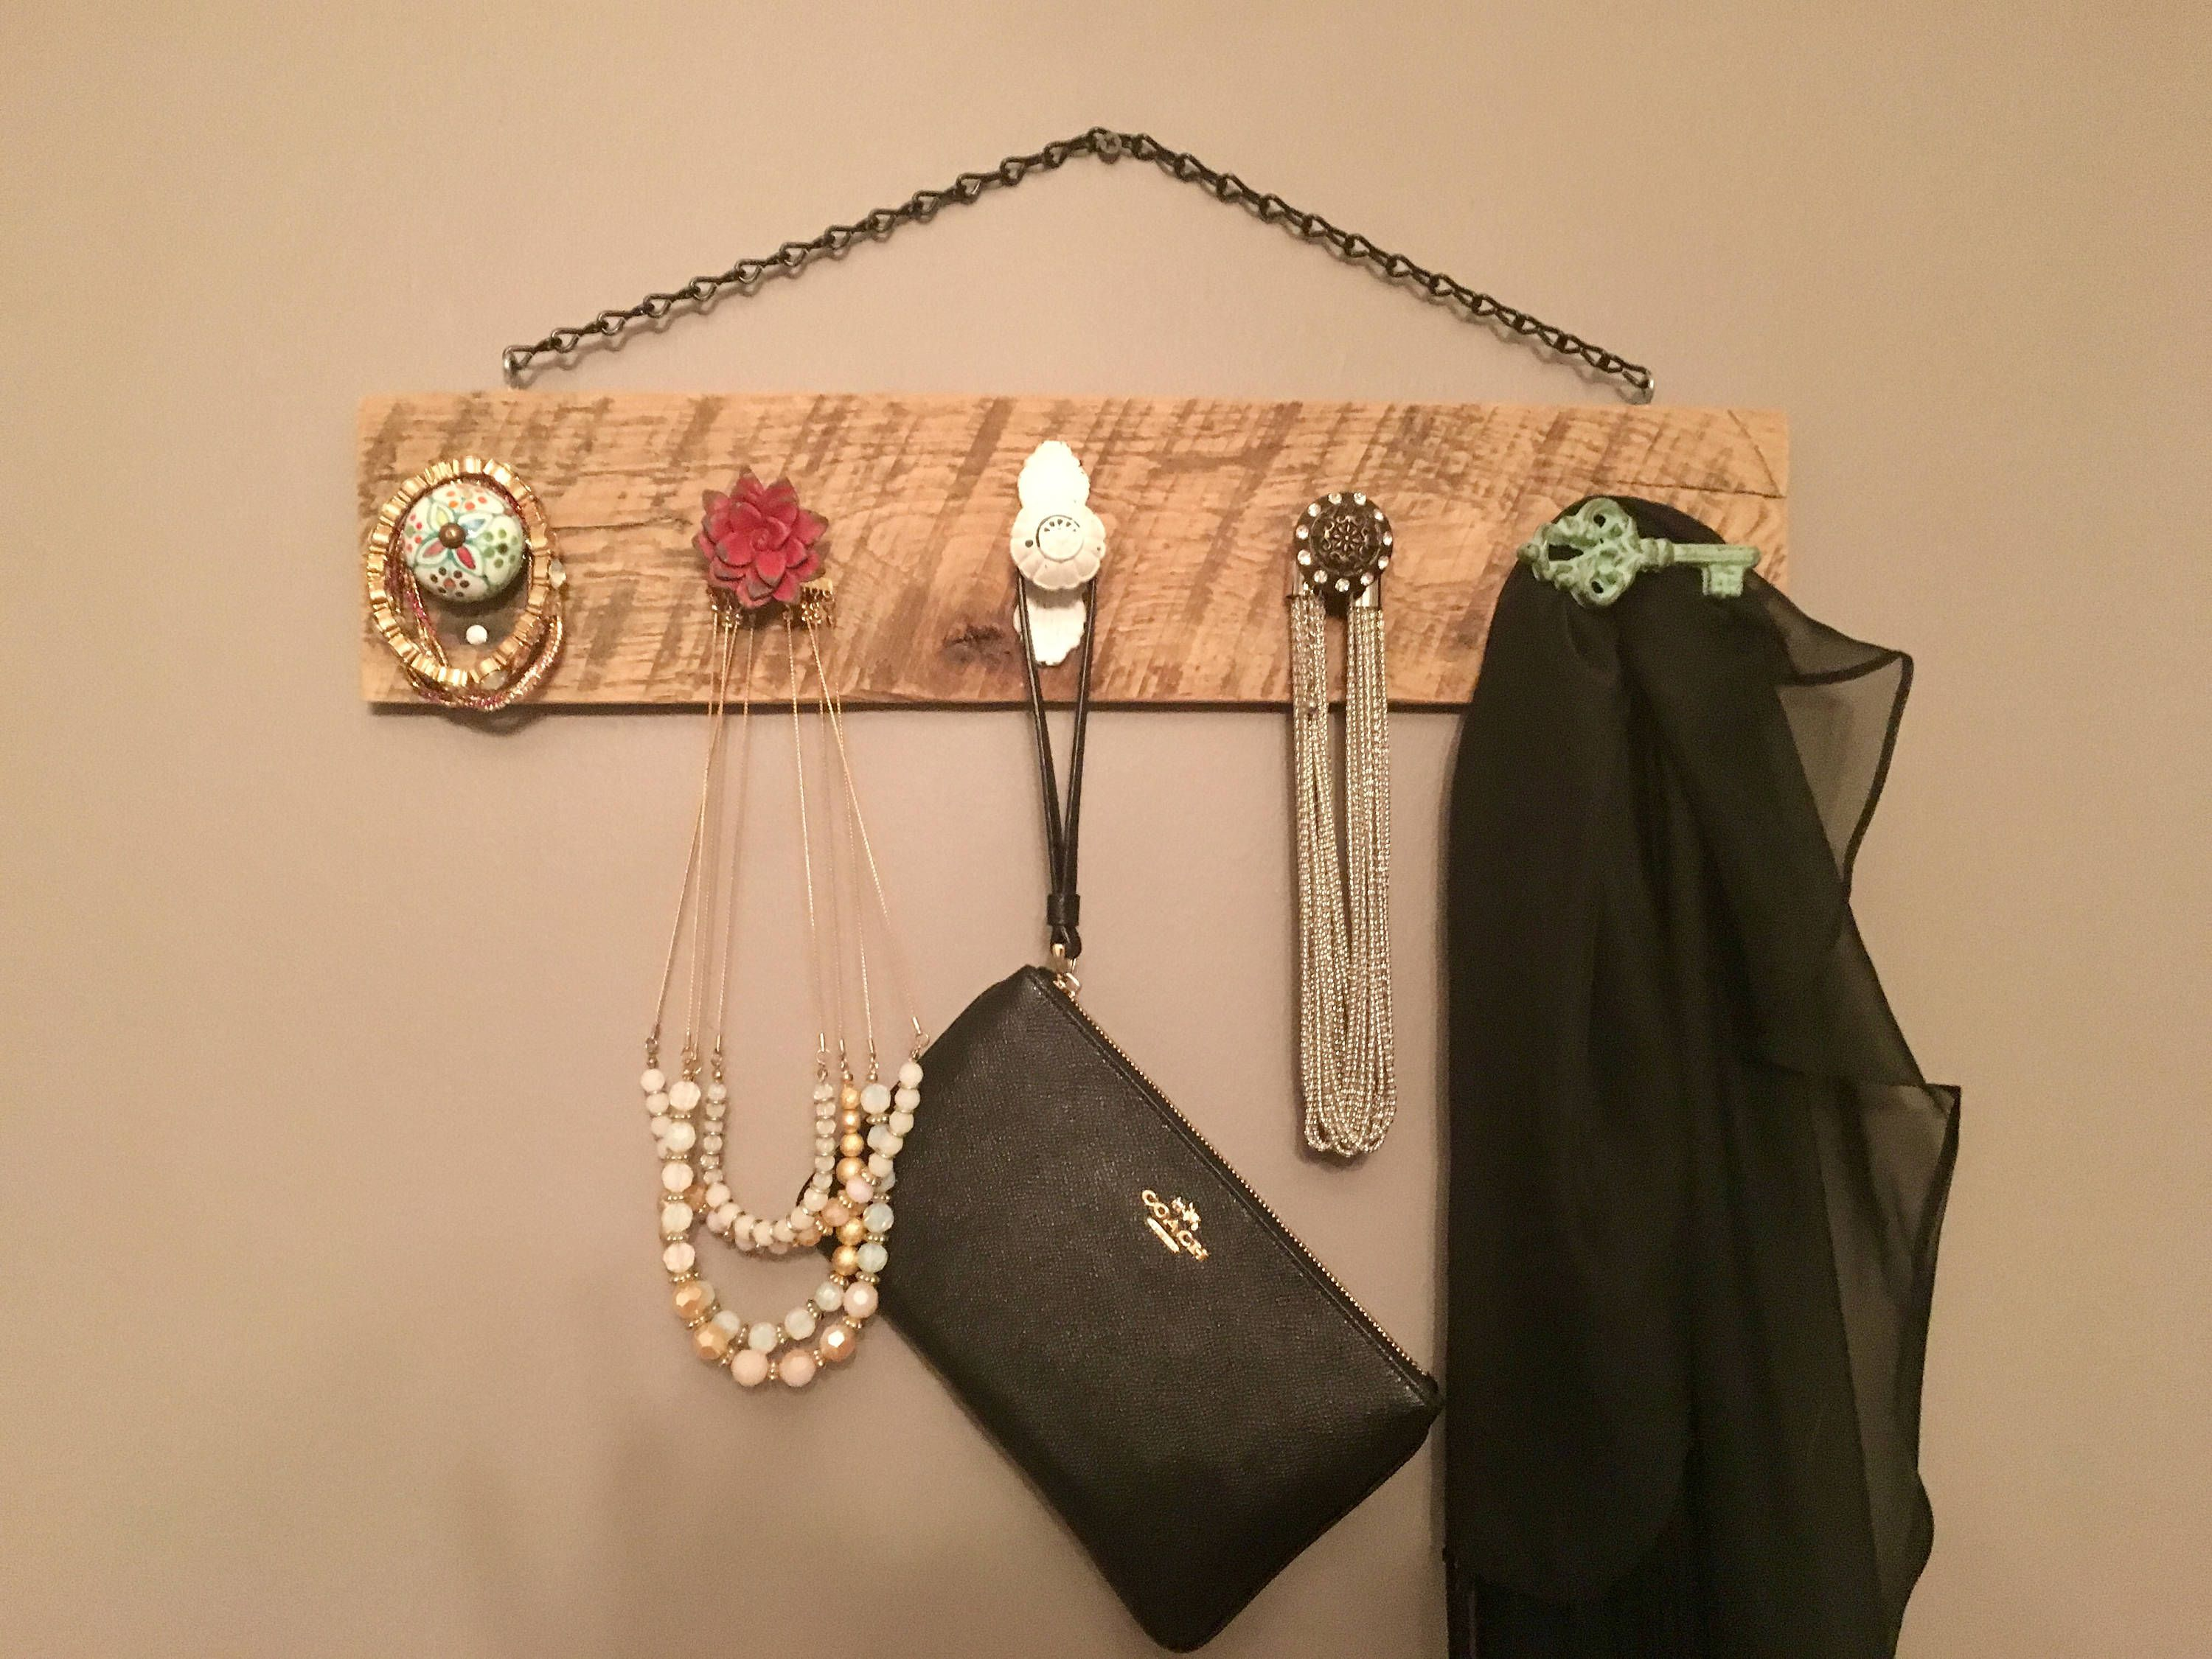 Rustic Wall Jewelry Holder Wall Jewelry Organizer Reclaimed Wood